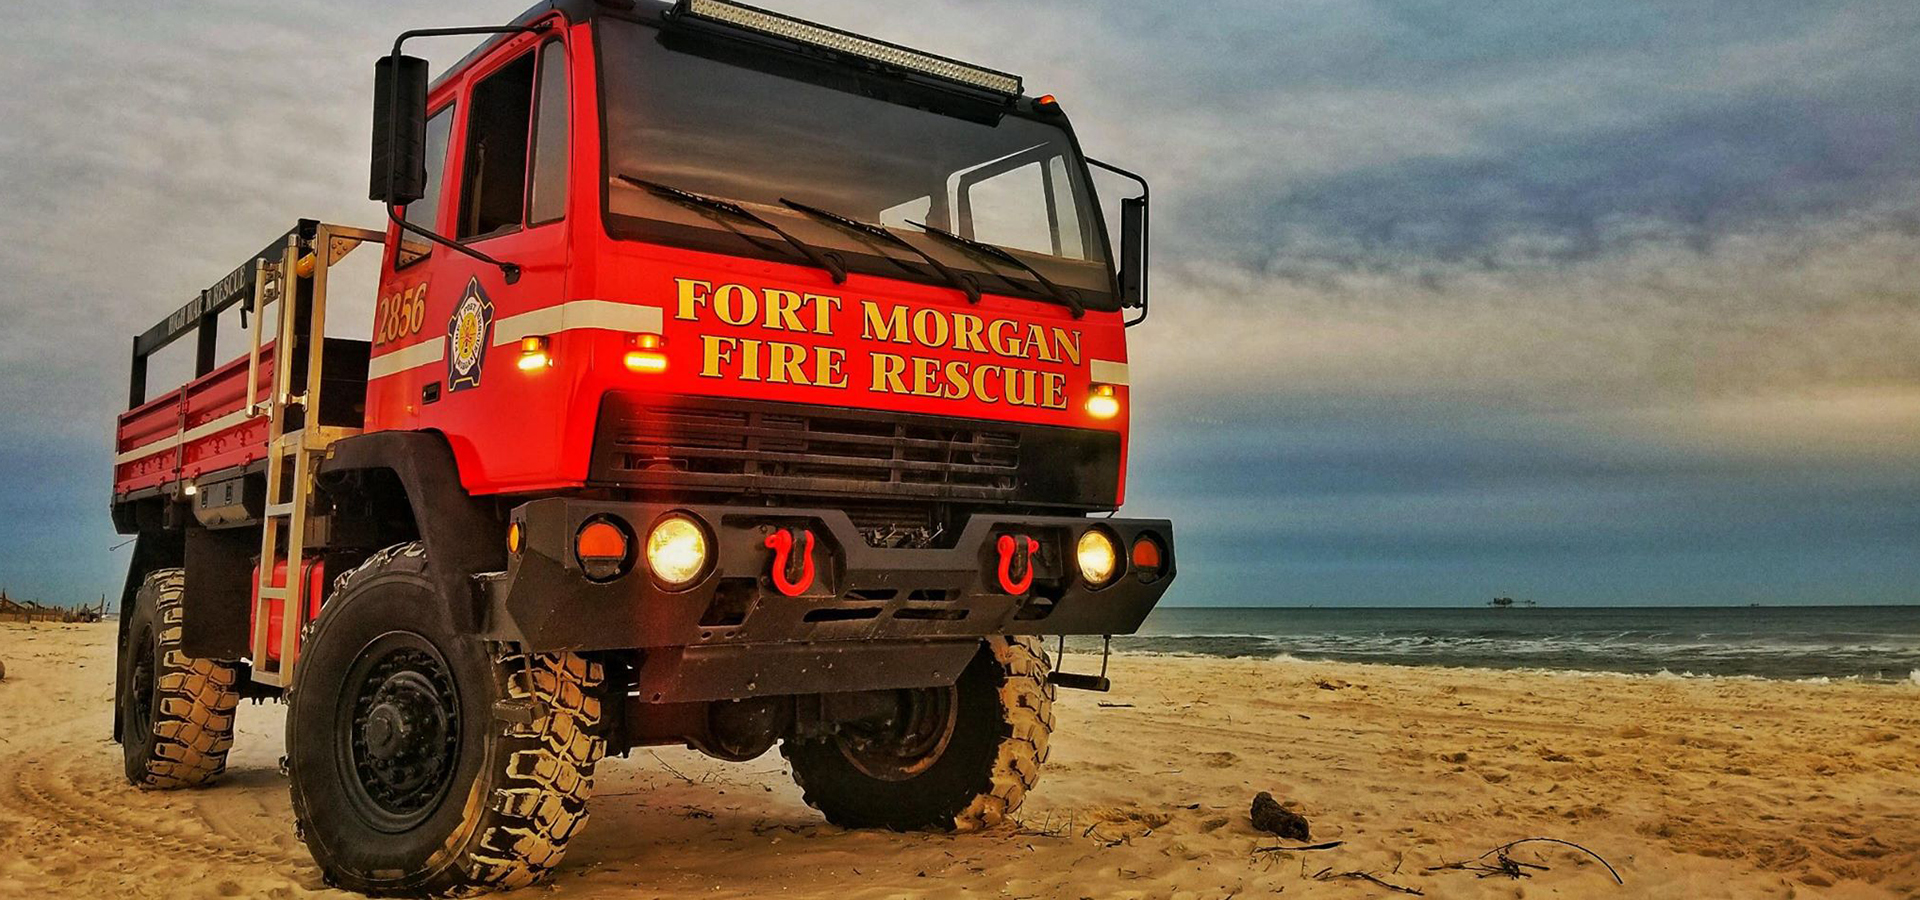 Fort Morgan Fire Rescue Truck